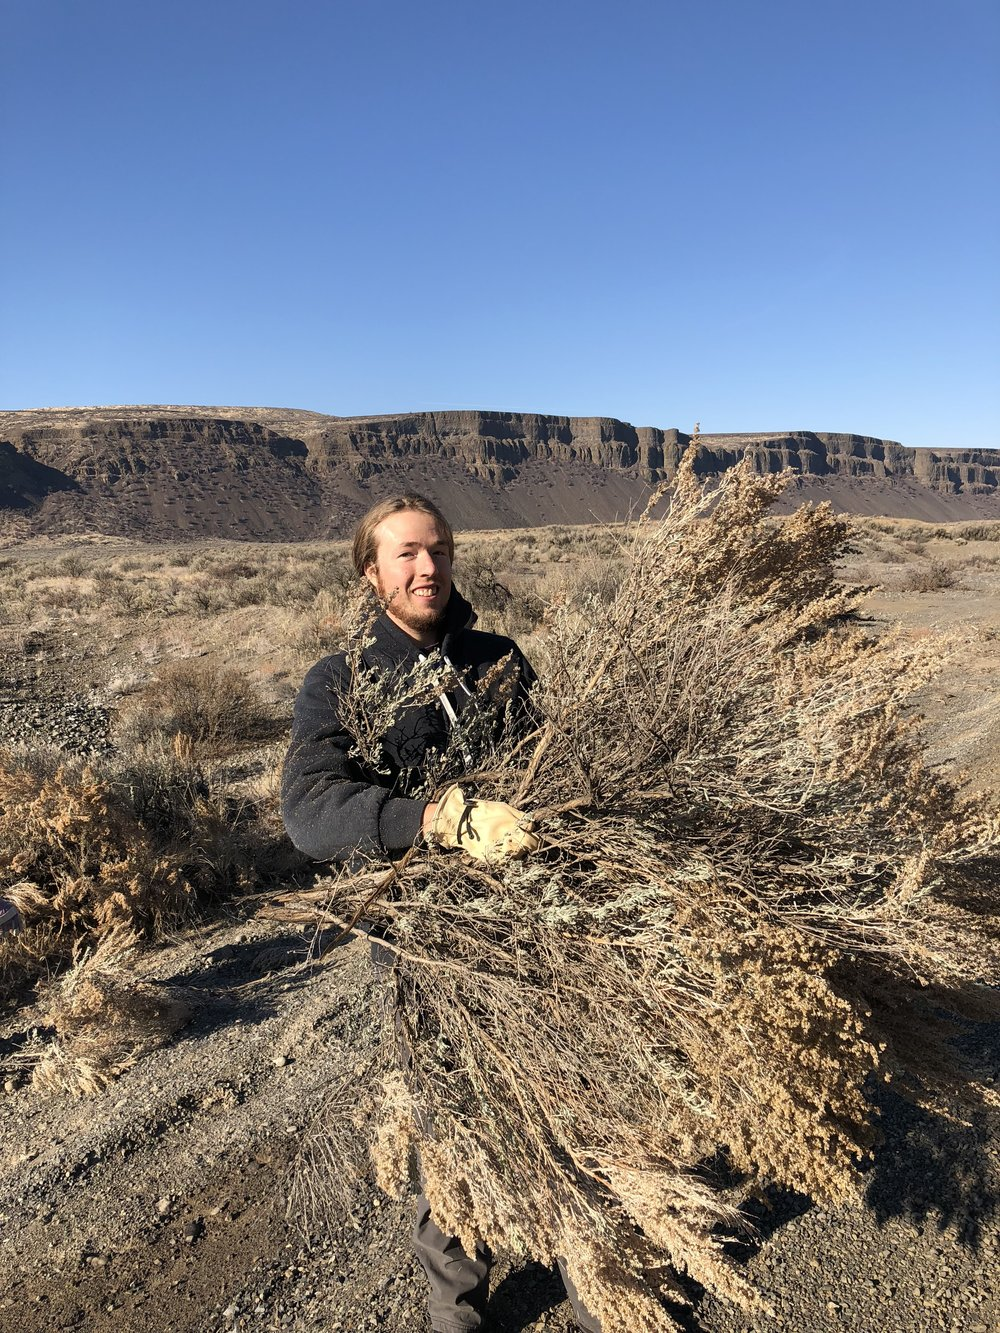 Jon Cowan collecting sagebrush to reseed a burned area. Photo by Alfonso Orozco.